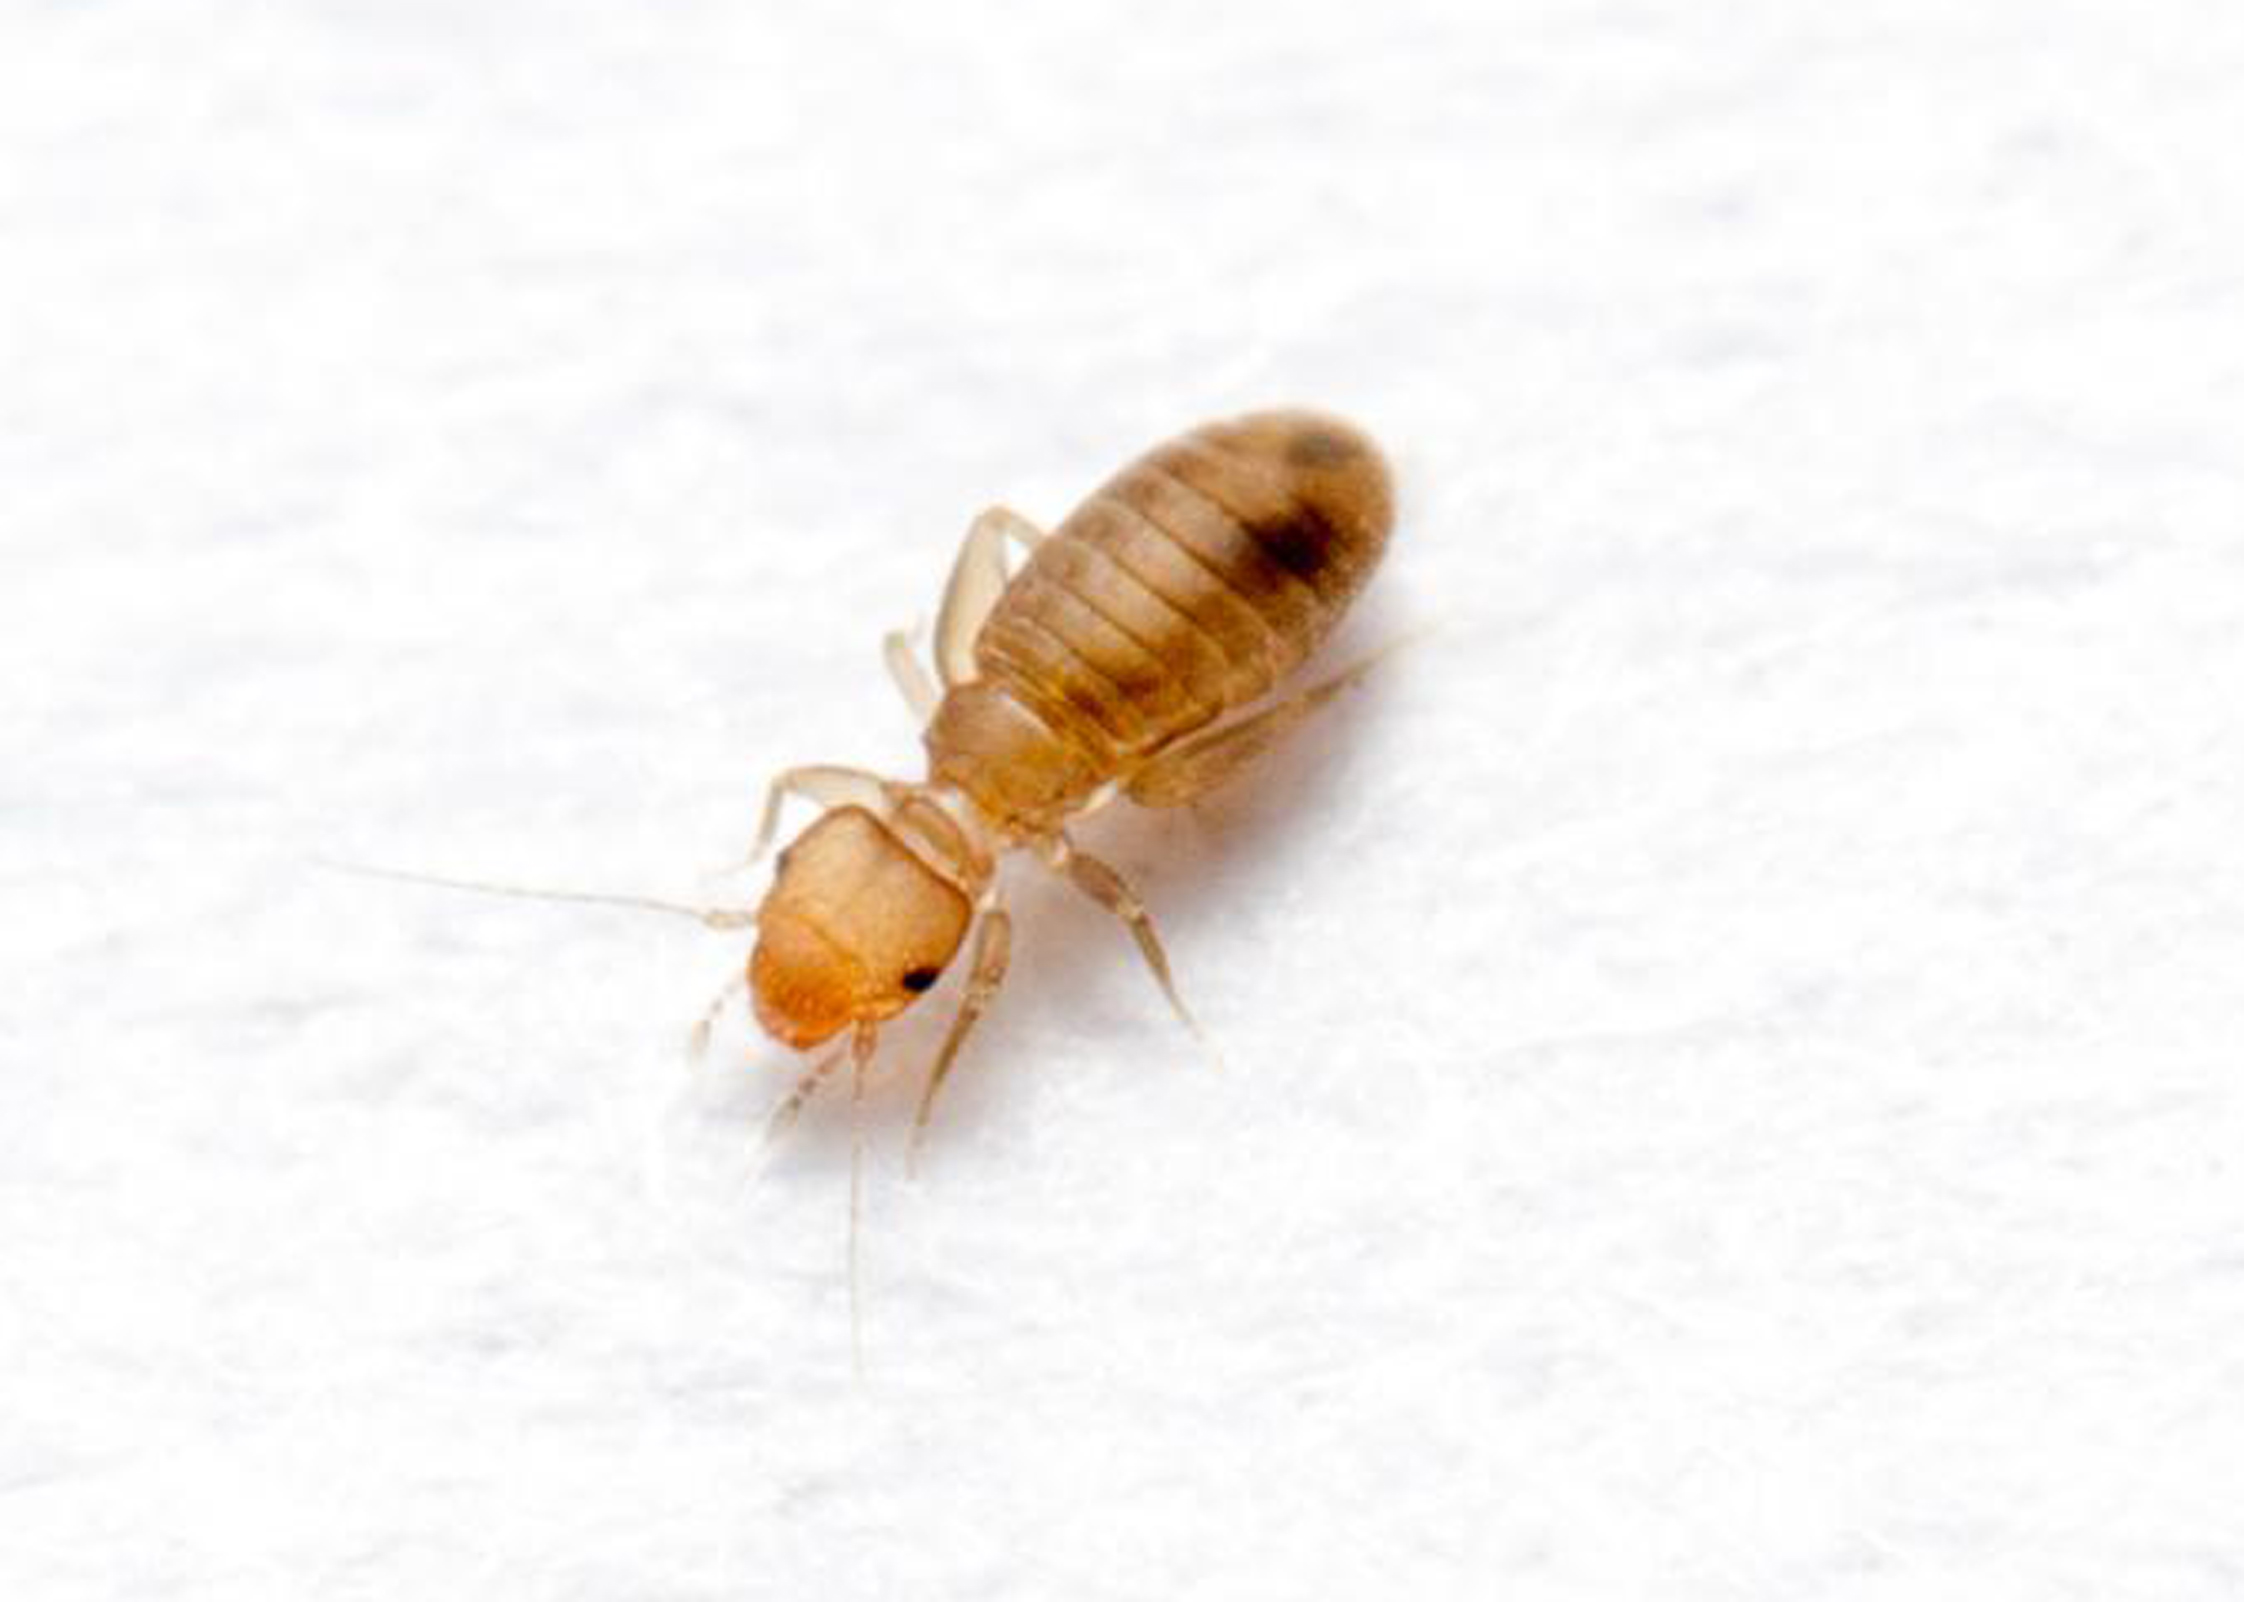 5 Things You Need To Know About The Bugs Secretly Living In Your House The Irish News